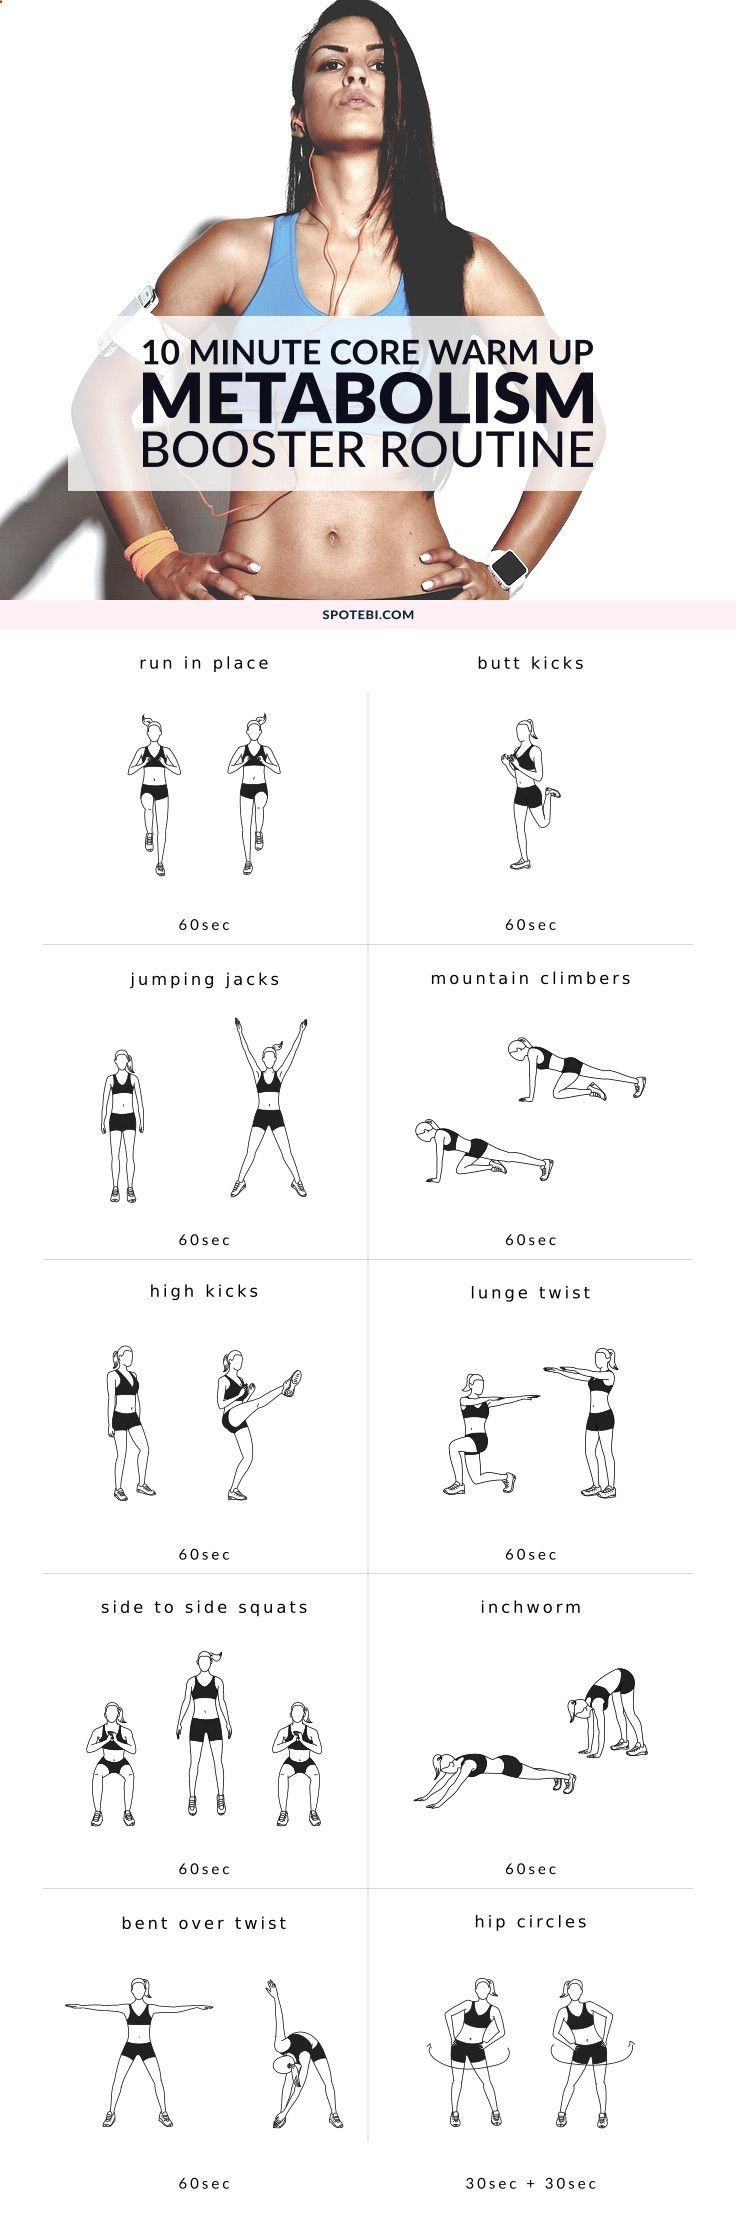 See more here â–º www.youtube.com/... Tags: healthy weight loss tips, nutrition tips for losing weight, tips how to lose weight fast - Warm up your abs and lower back with this bodyweight at home core warm up routine. Get your heart pumping and prepare yo